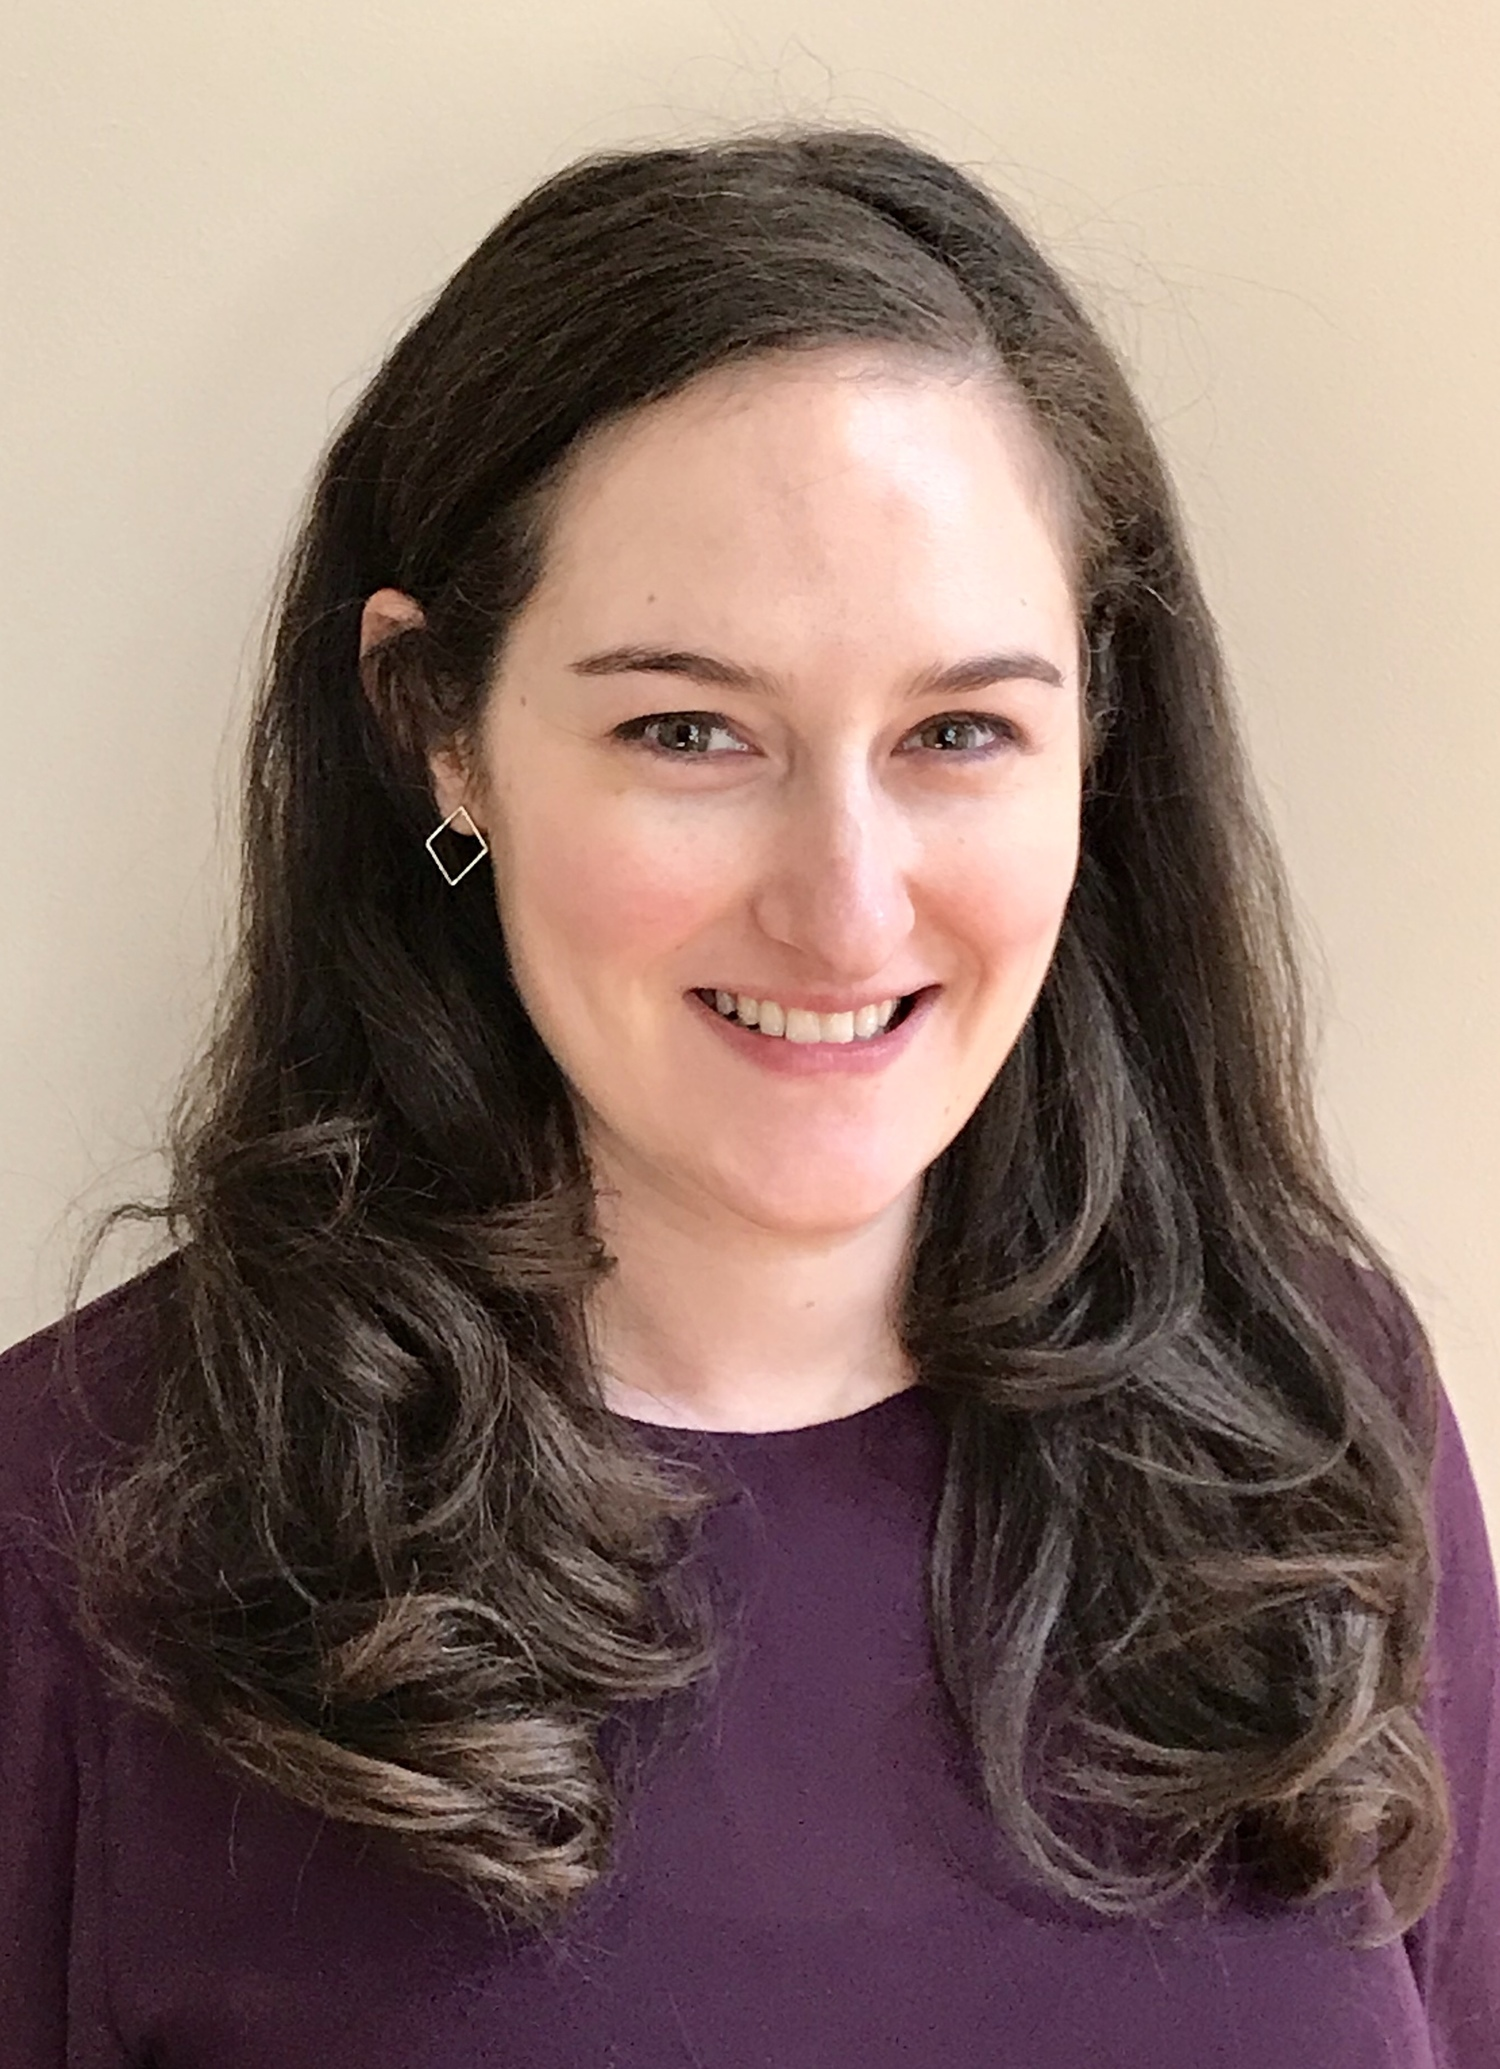 Clinical PhD Student Rachel Shor Receives 2018 Wilbert J. McKeachie Teaching Excellence Award